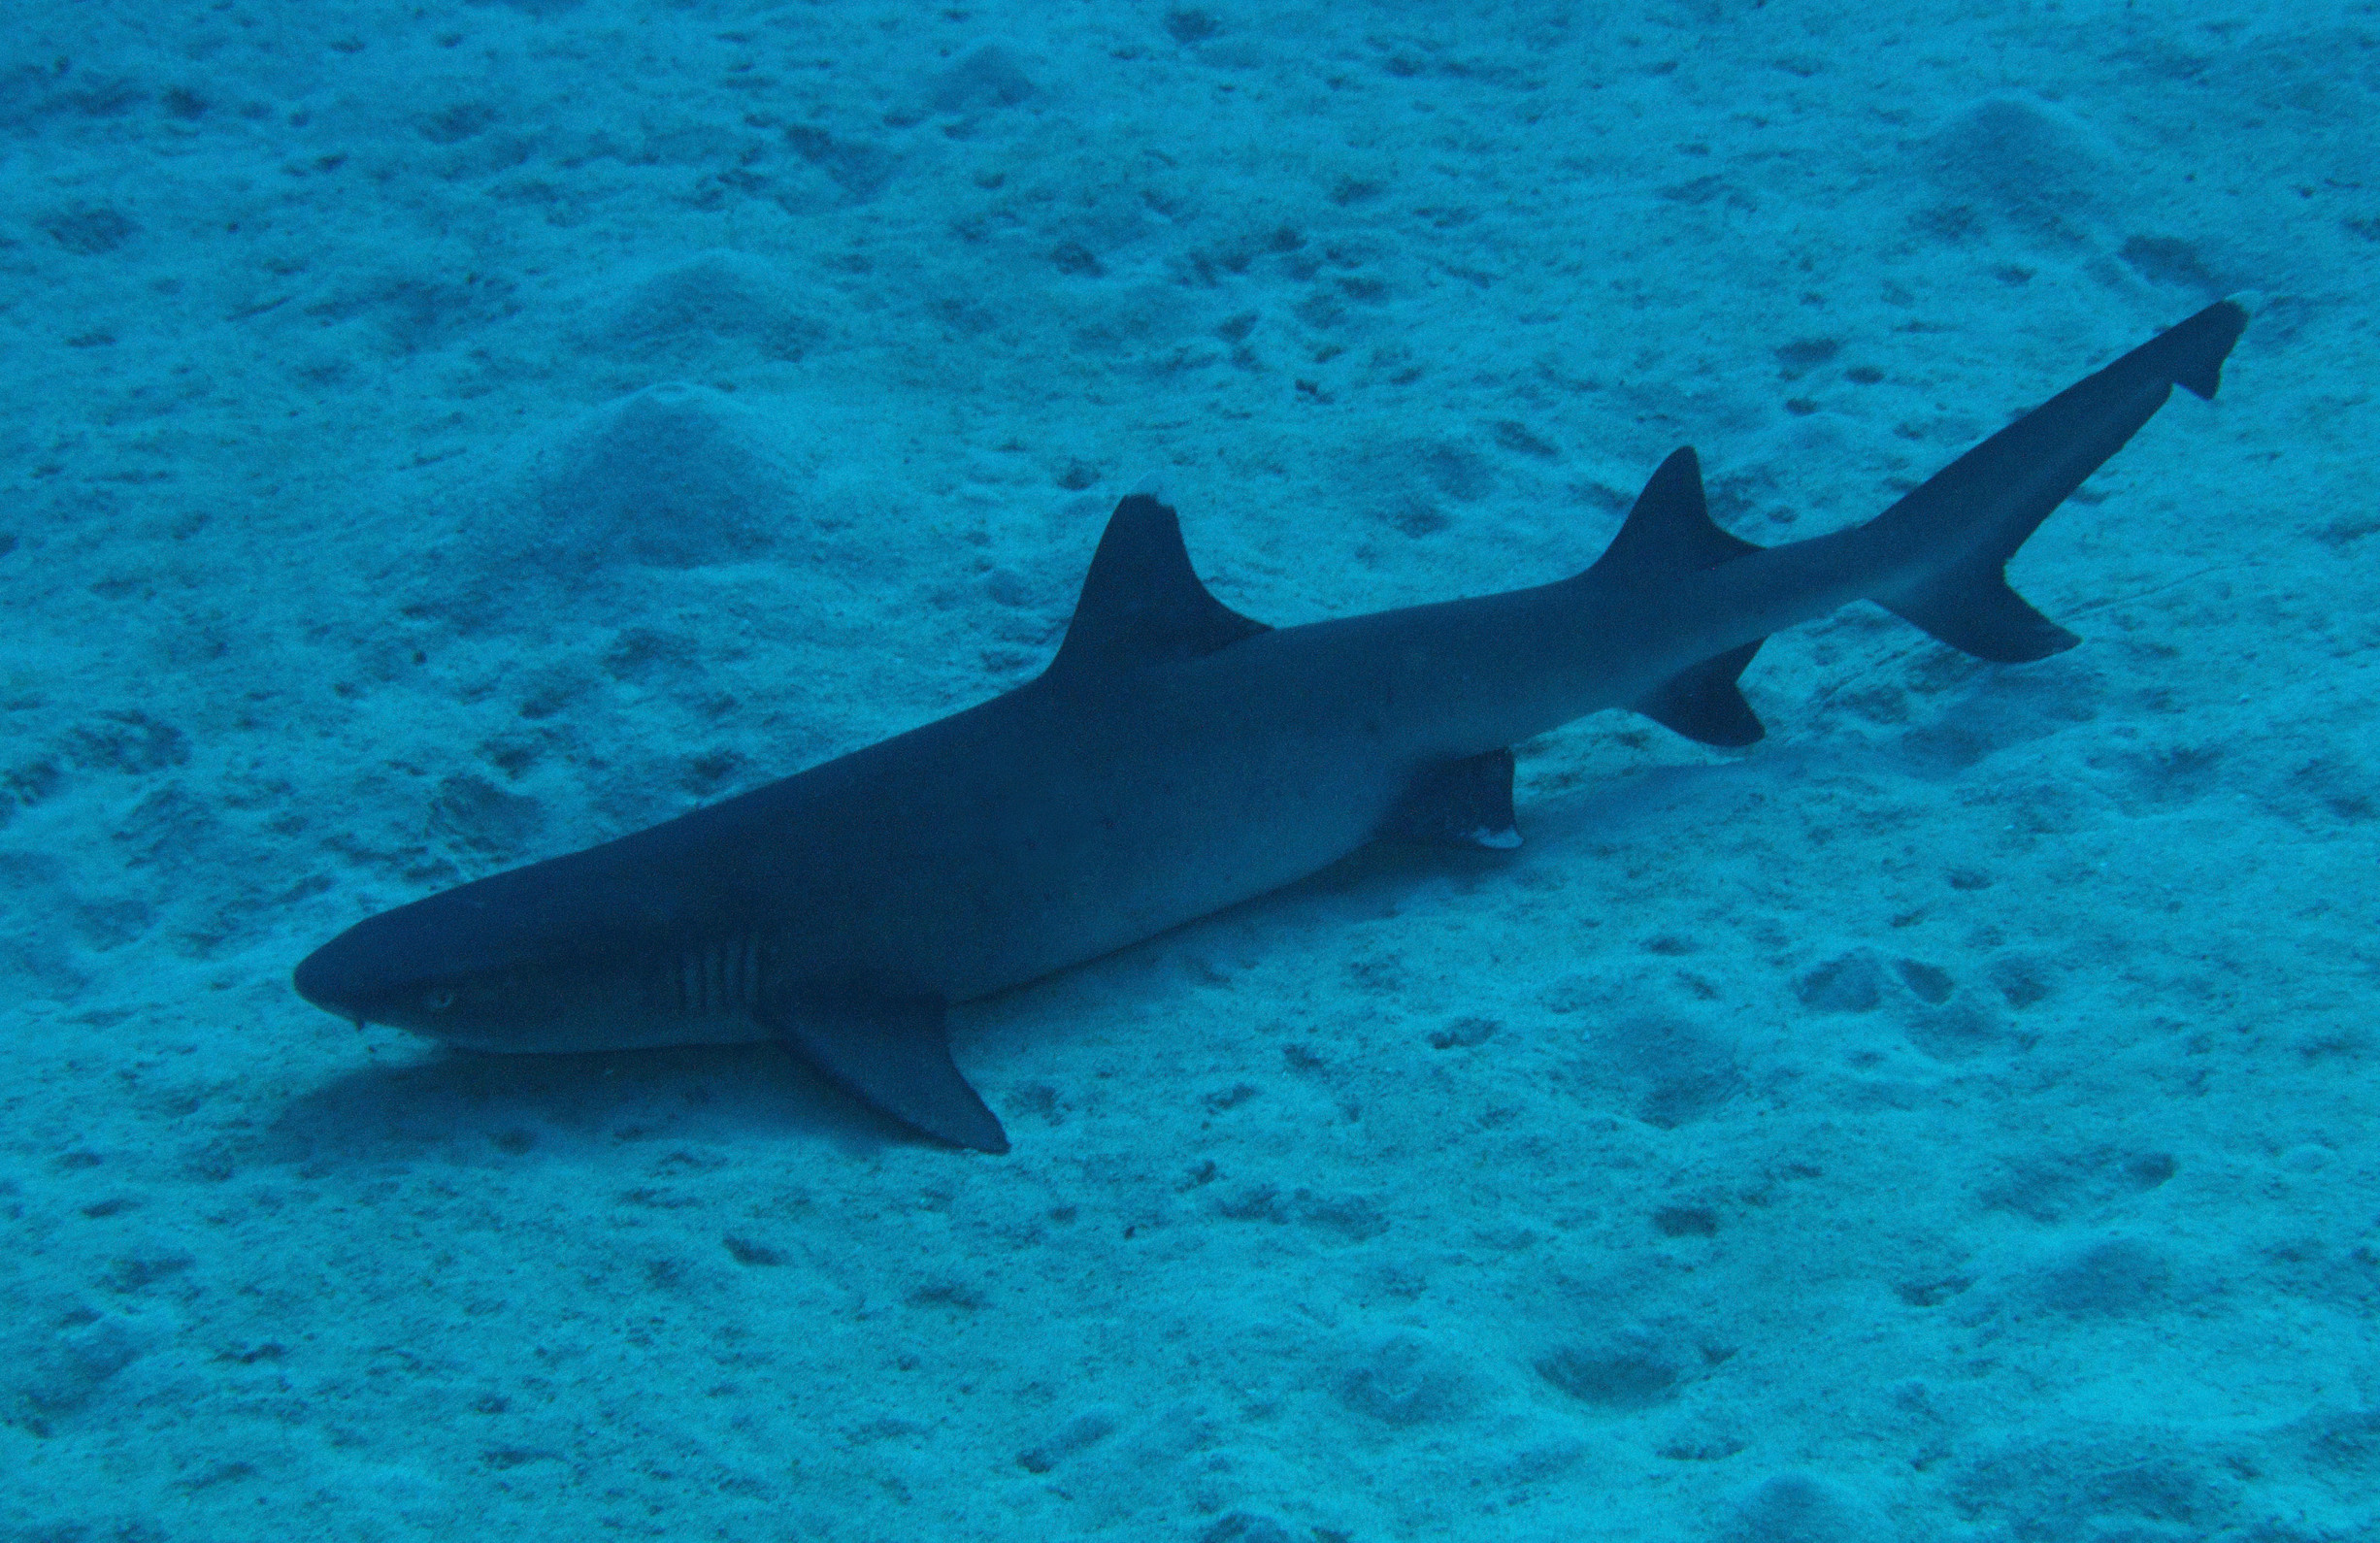 Great Barrier Reef Scuba Diving Sharks